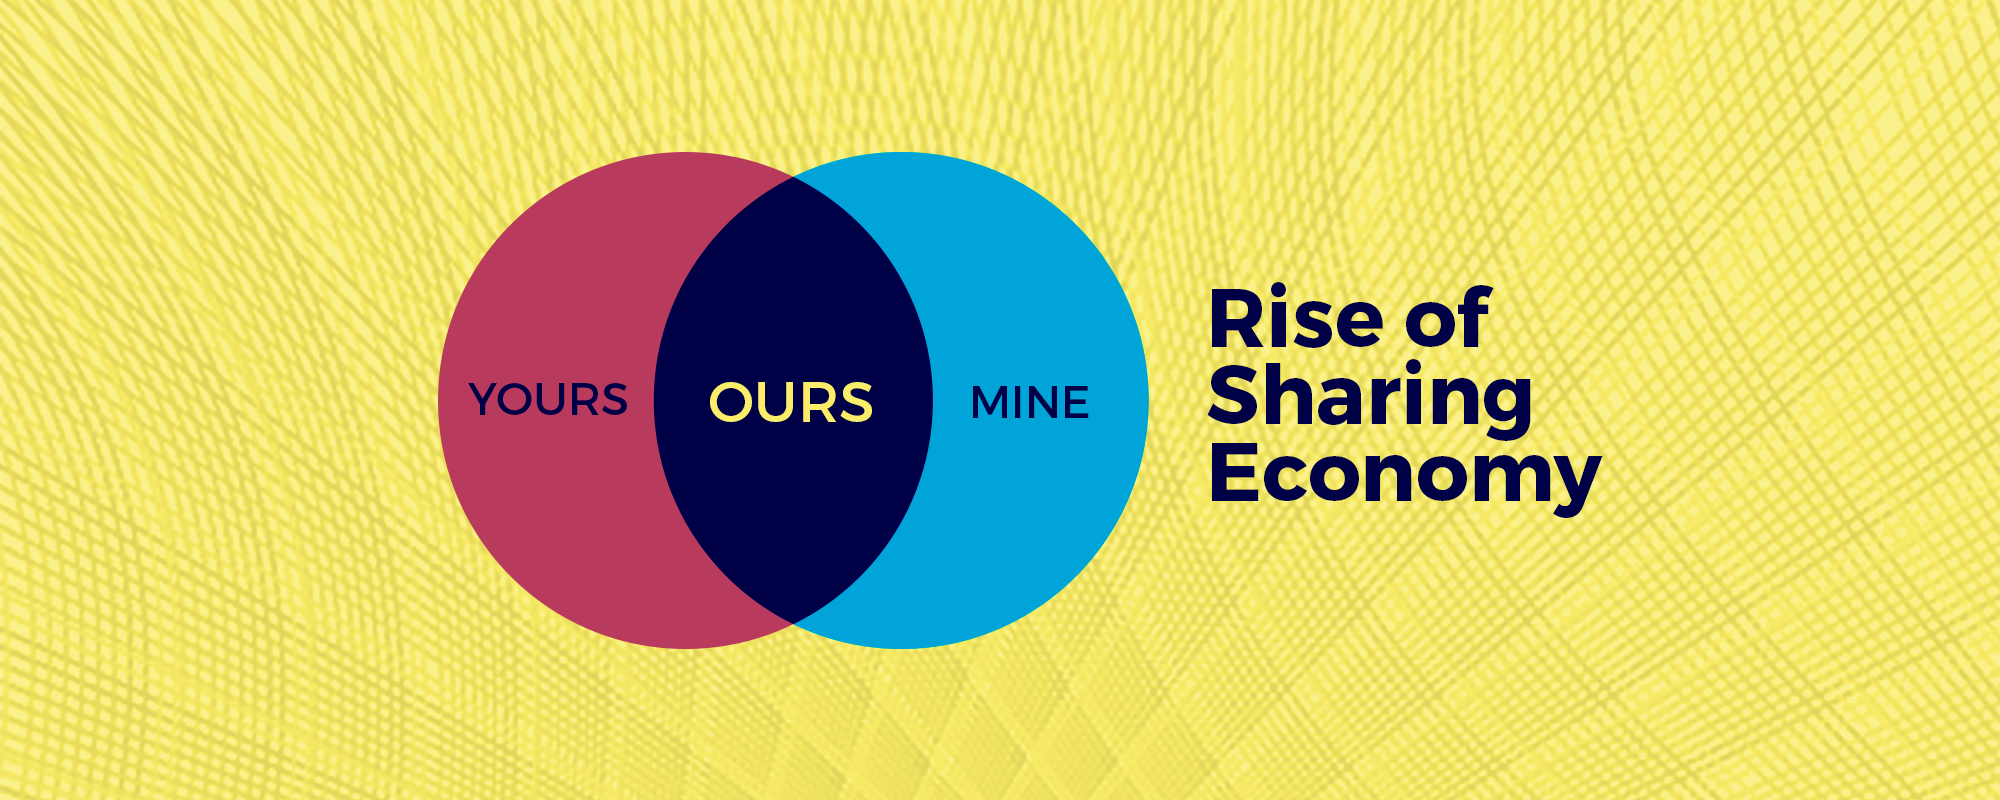 Strangers with Benefits: The Rise of Sharing Economy & Why Startups Are Loving It